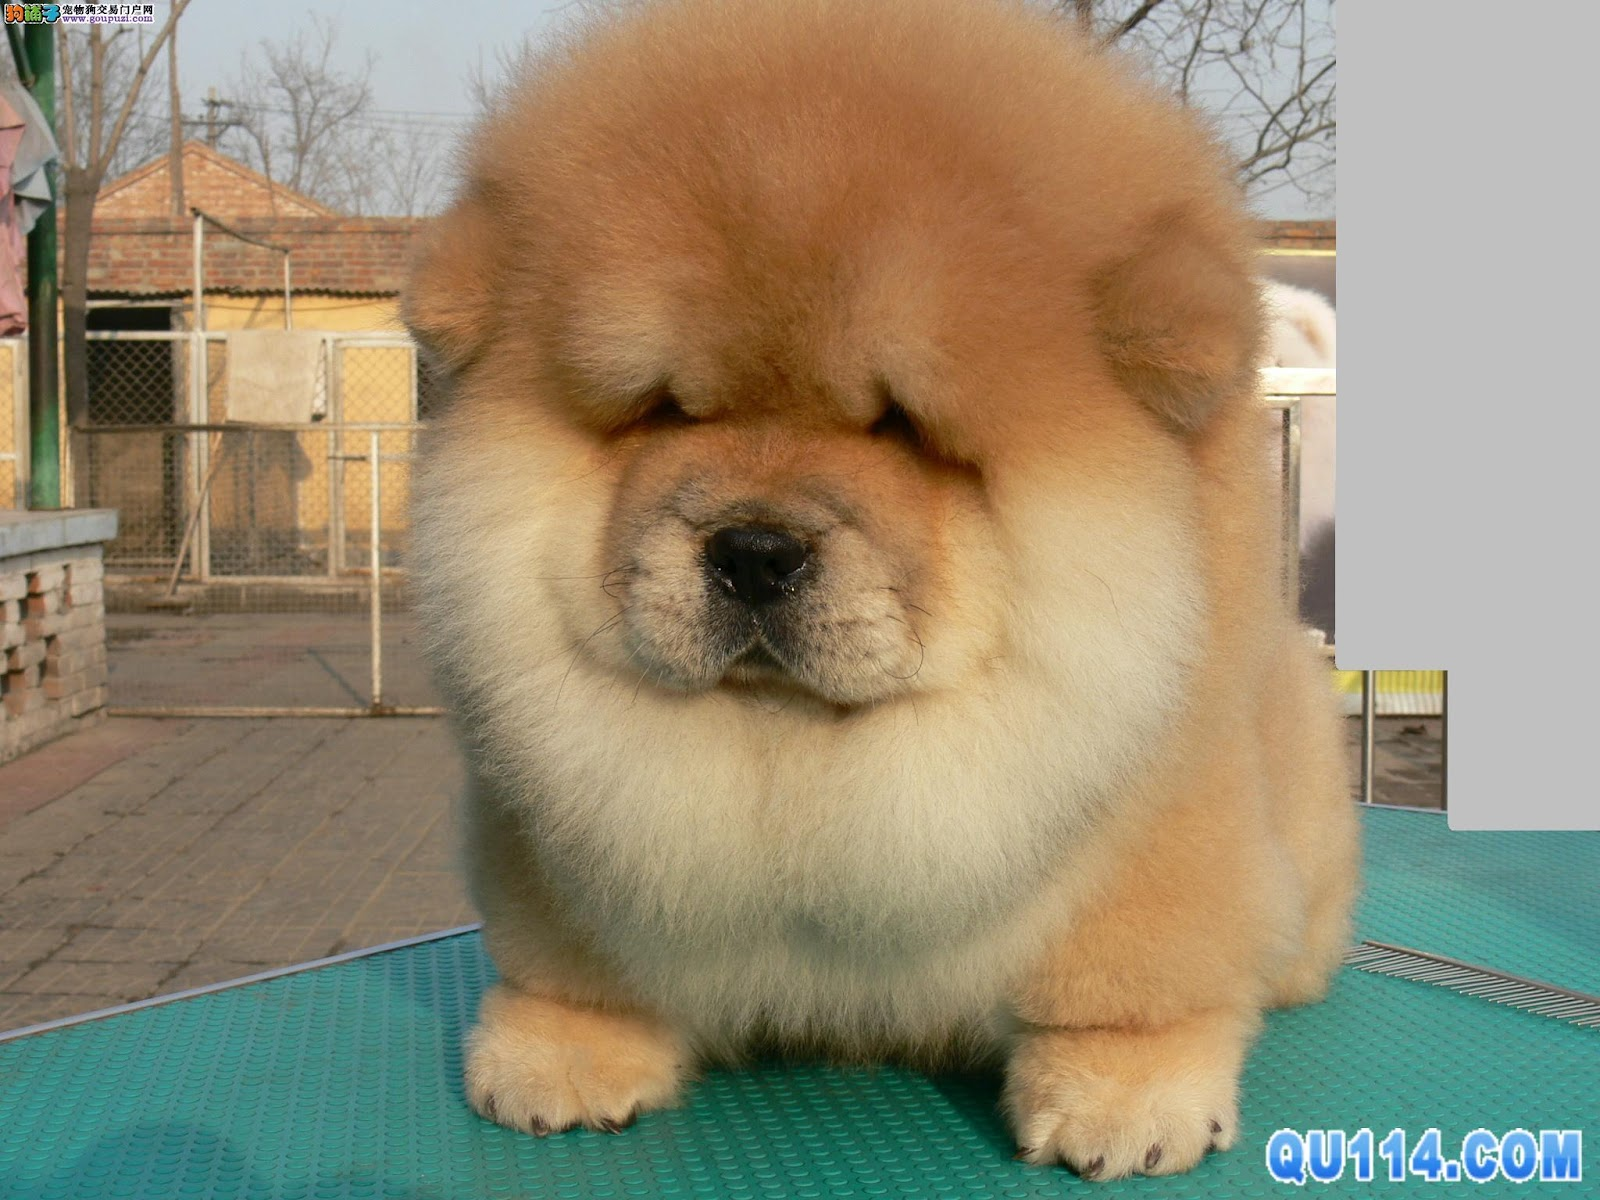 Cute Baby Animal Pictures Wallpapers 寵物 鬆獅犬